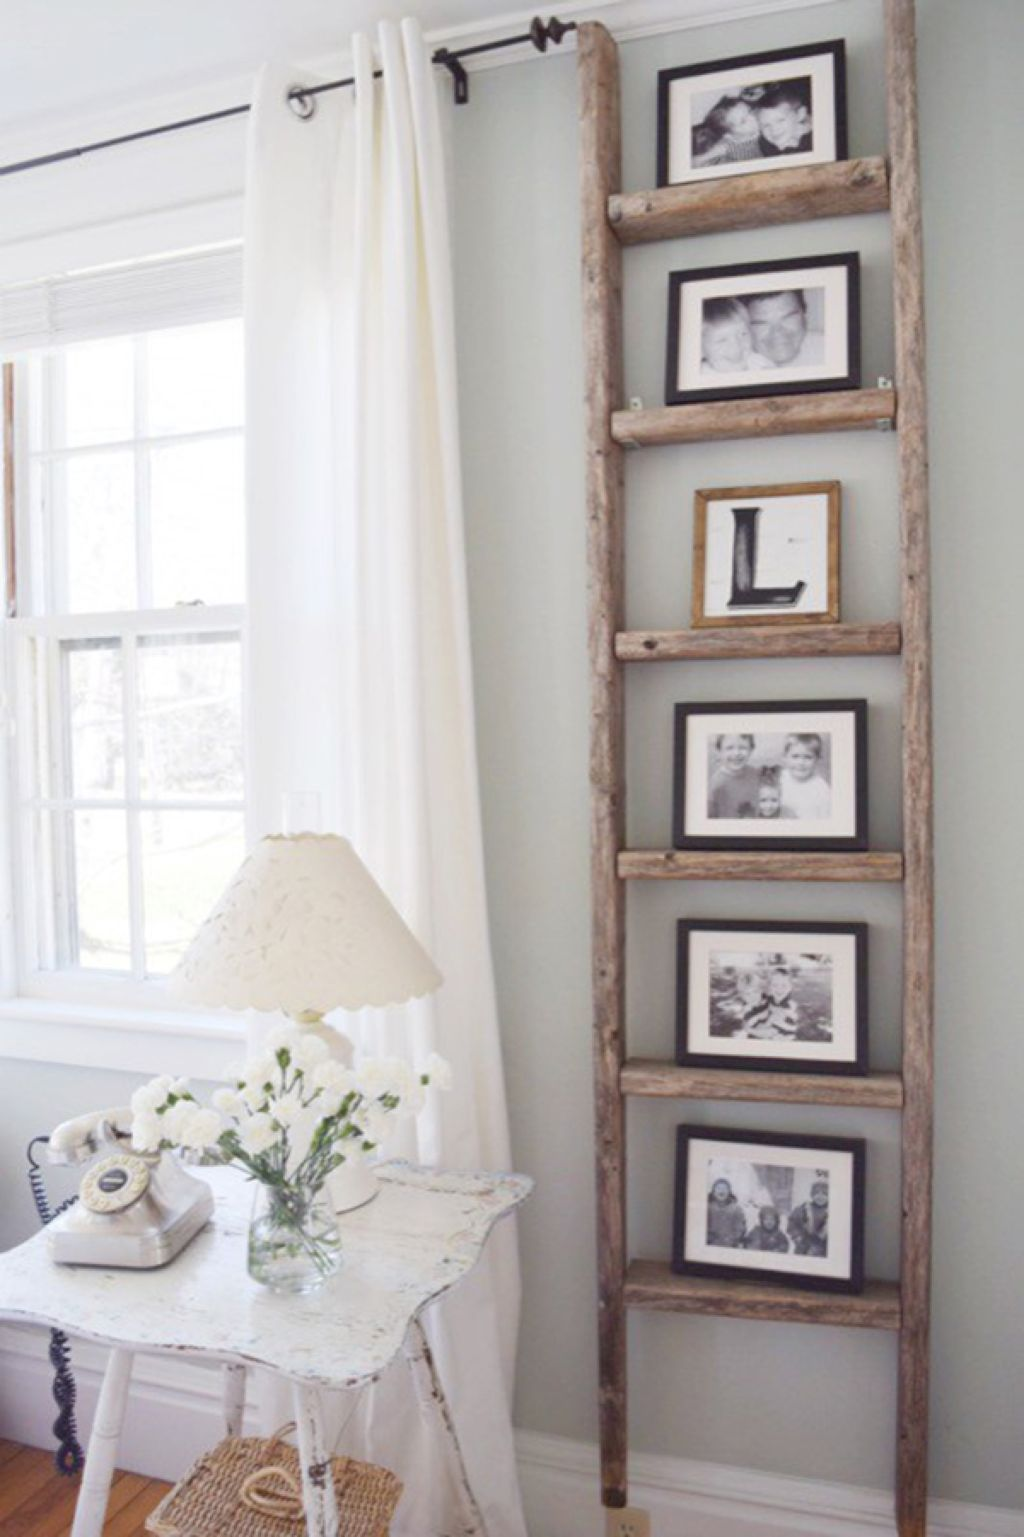 Diy old window decor  pin by heather ashworth on diy decor  pinterest  home decor home